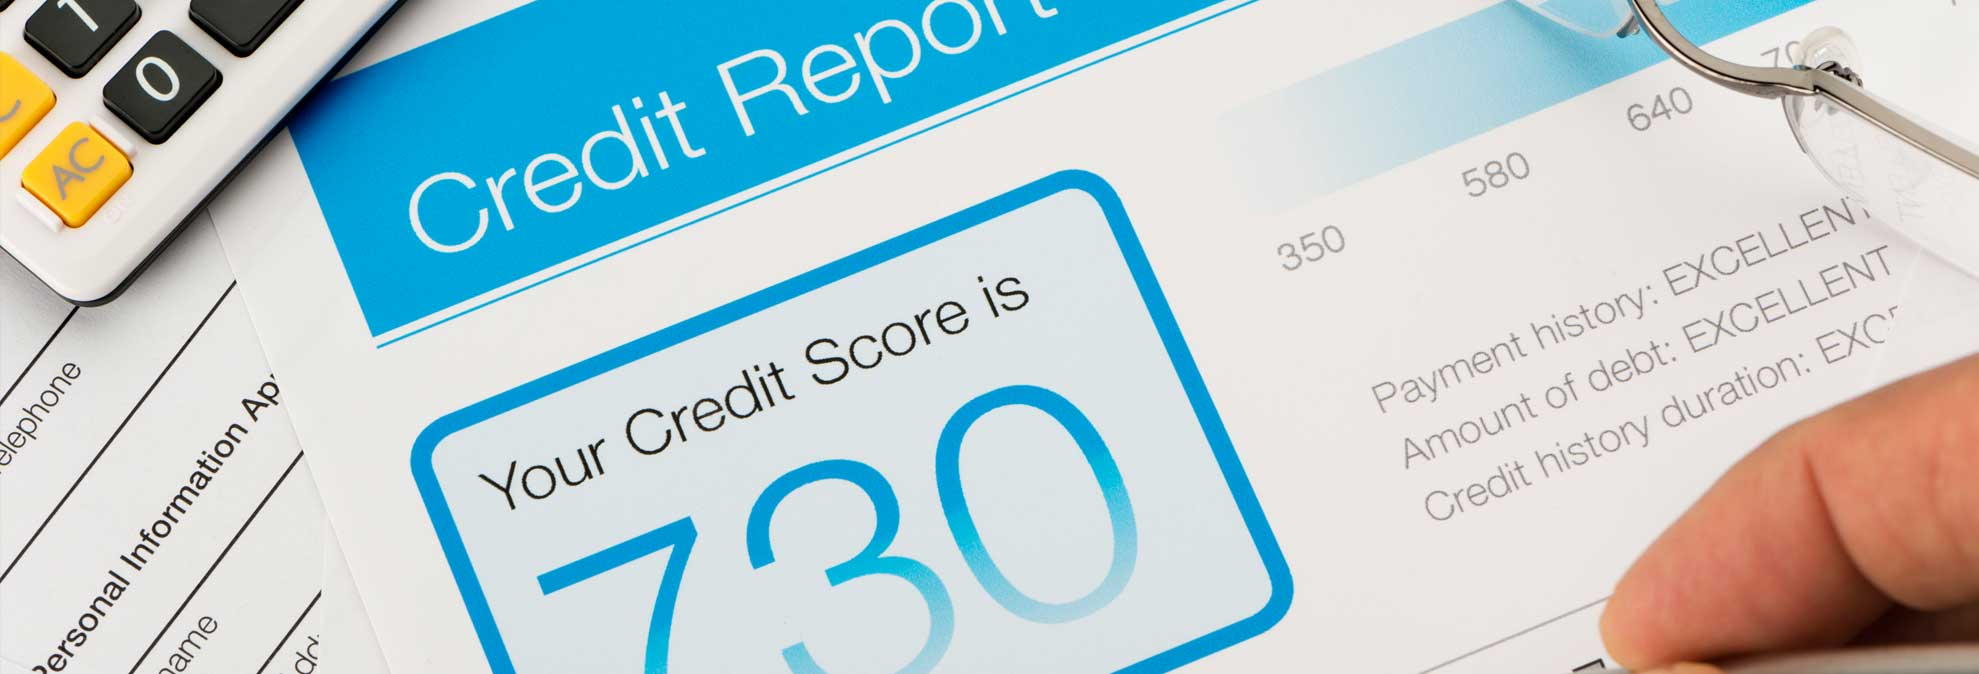 credit score calculator - How is Credit Score Evaluated?